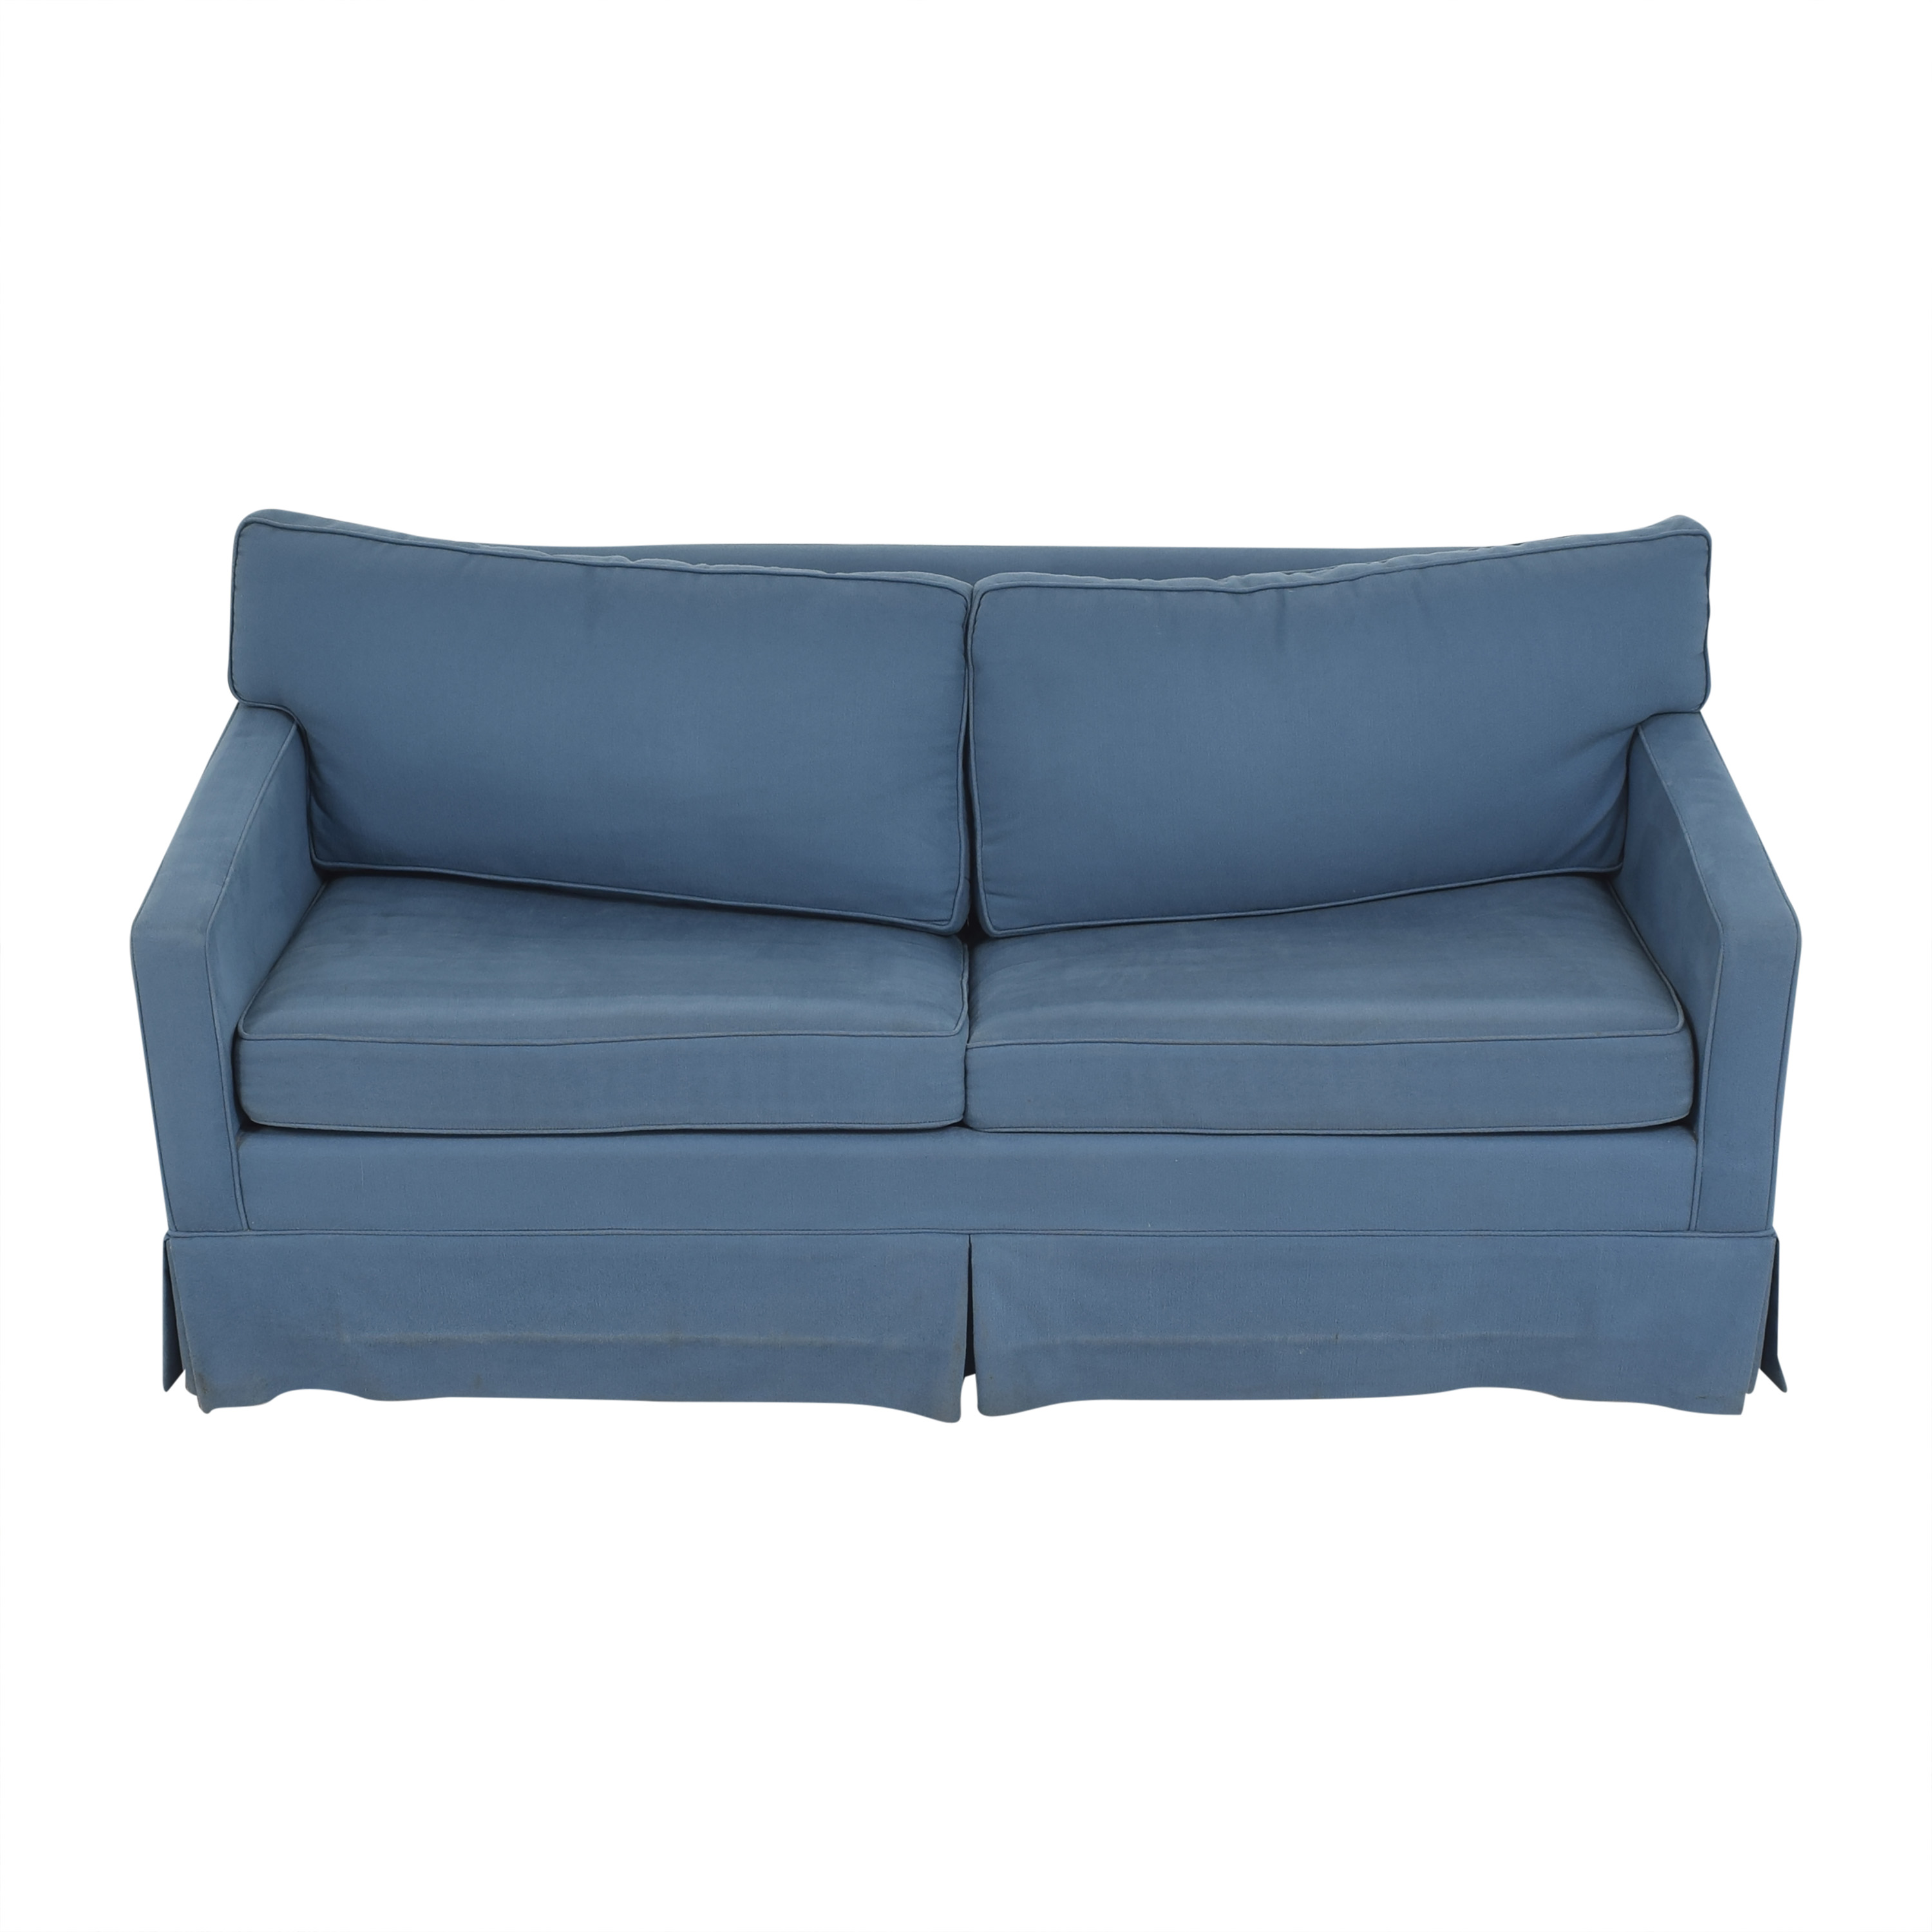 Carlyle Carlyle Two Cushion Skirted Sleeper Sofa coupon